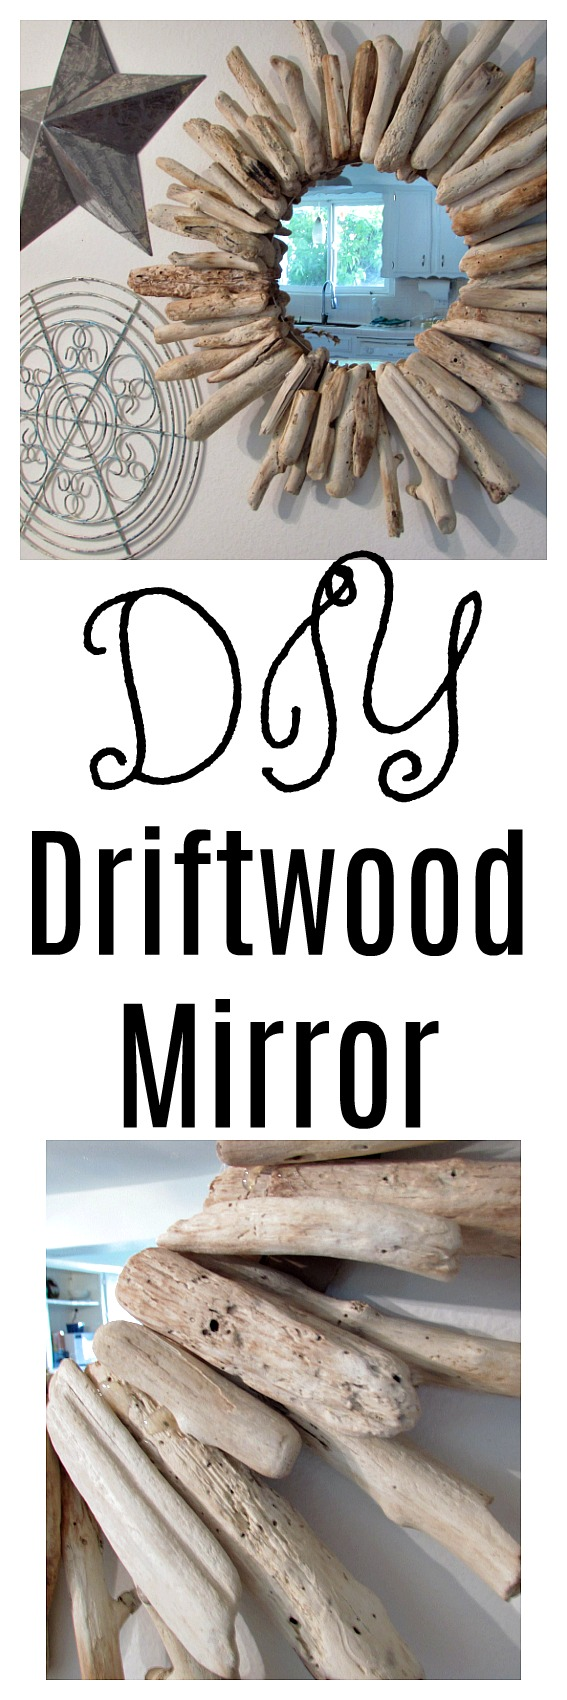 DIY Driftwood Mirror Collage